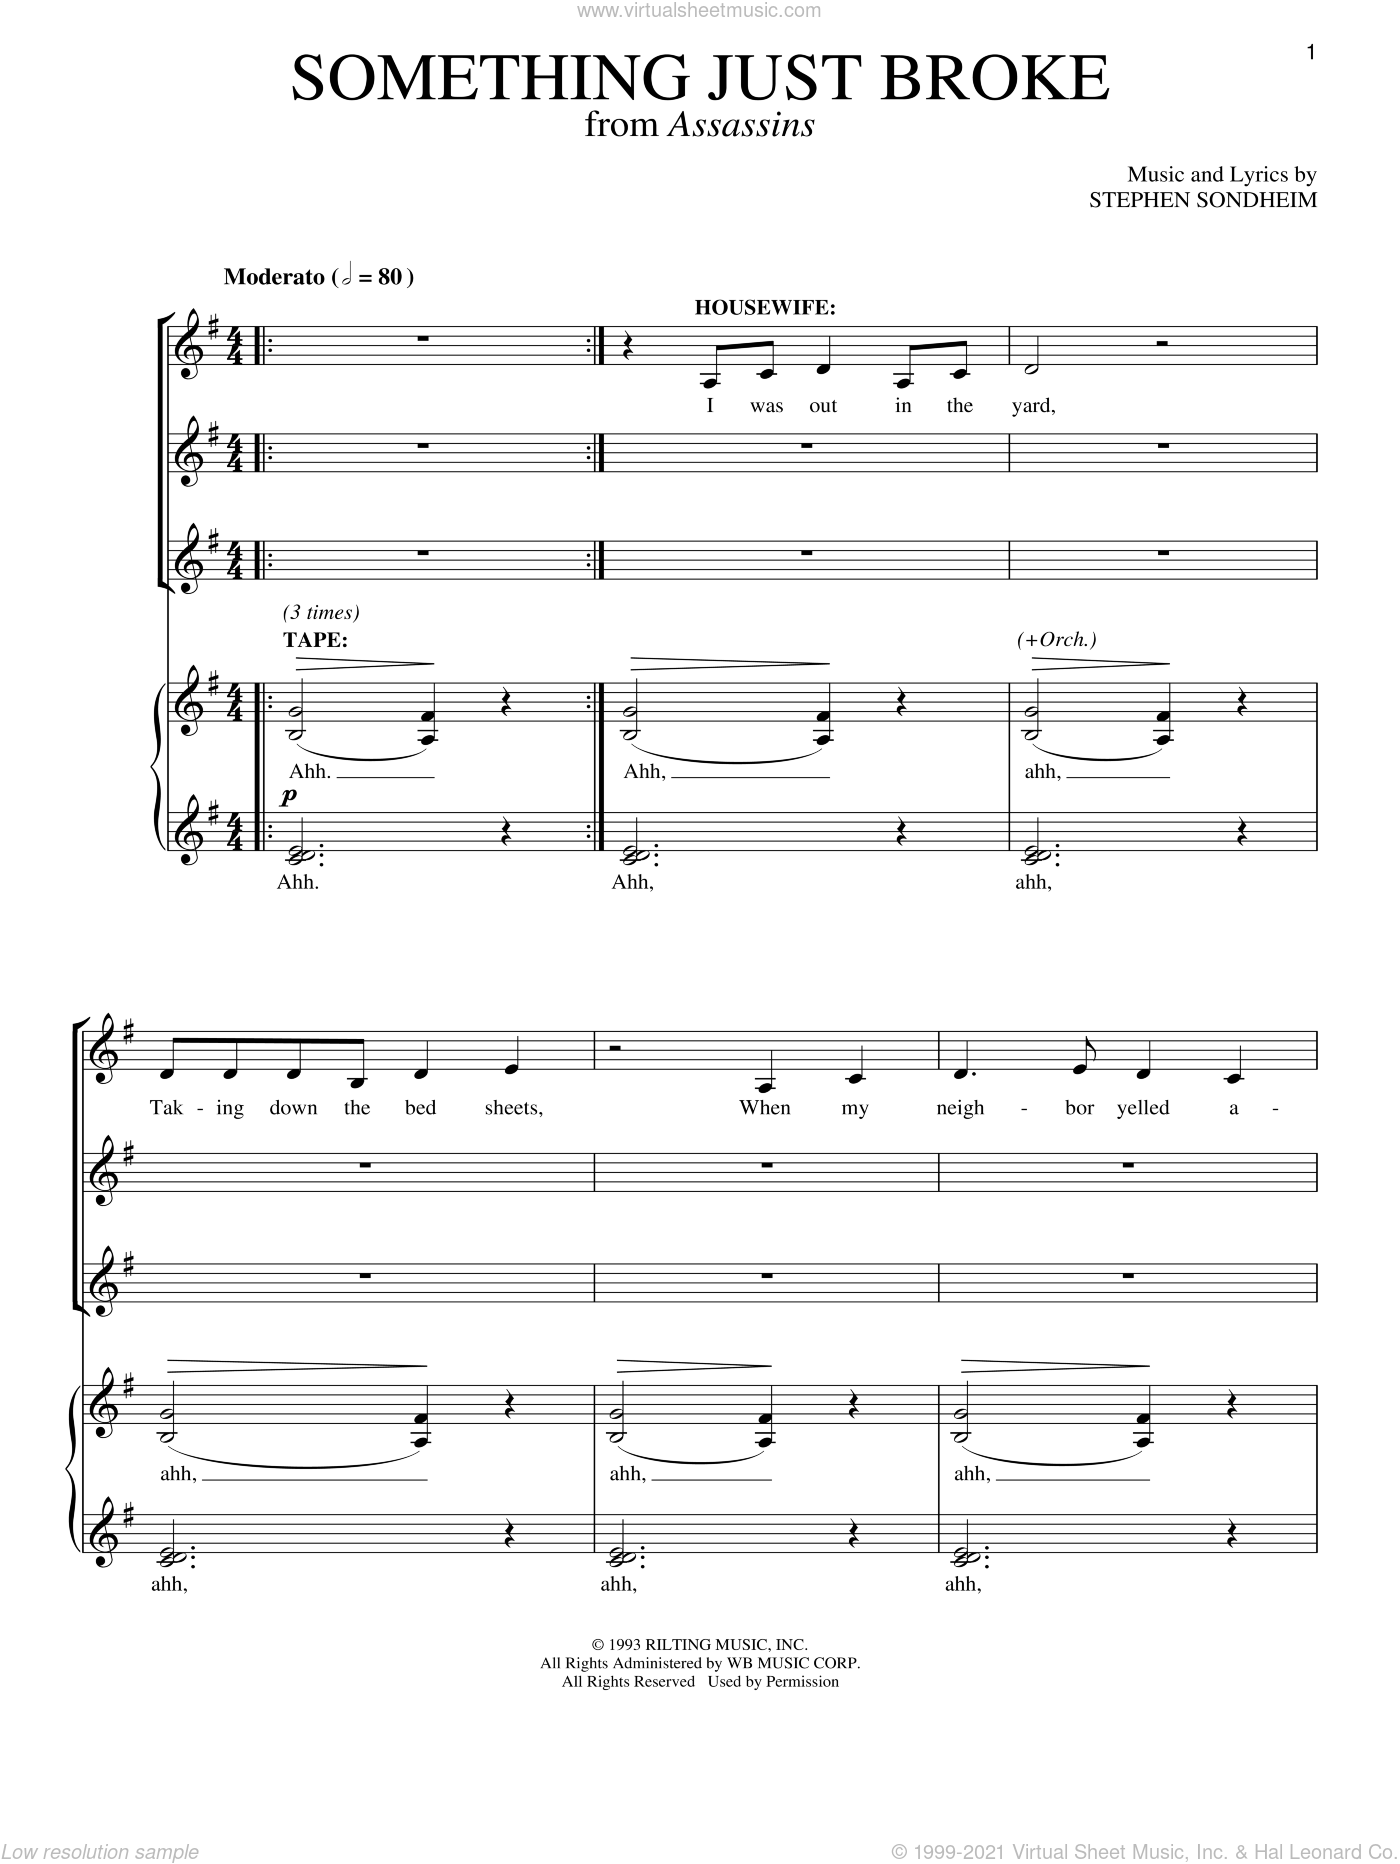 Something Just Broke sheet music for voice and piano by Stephen Sondheim